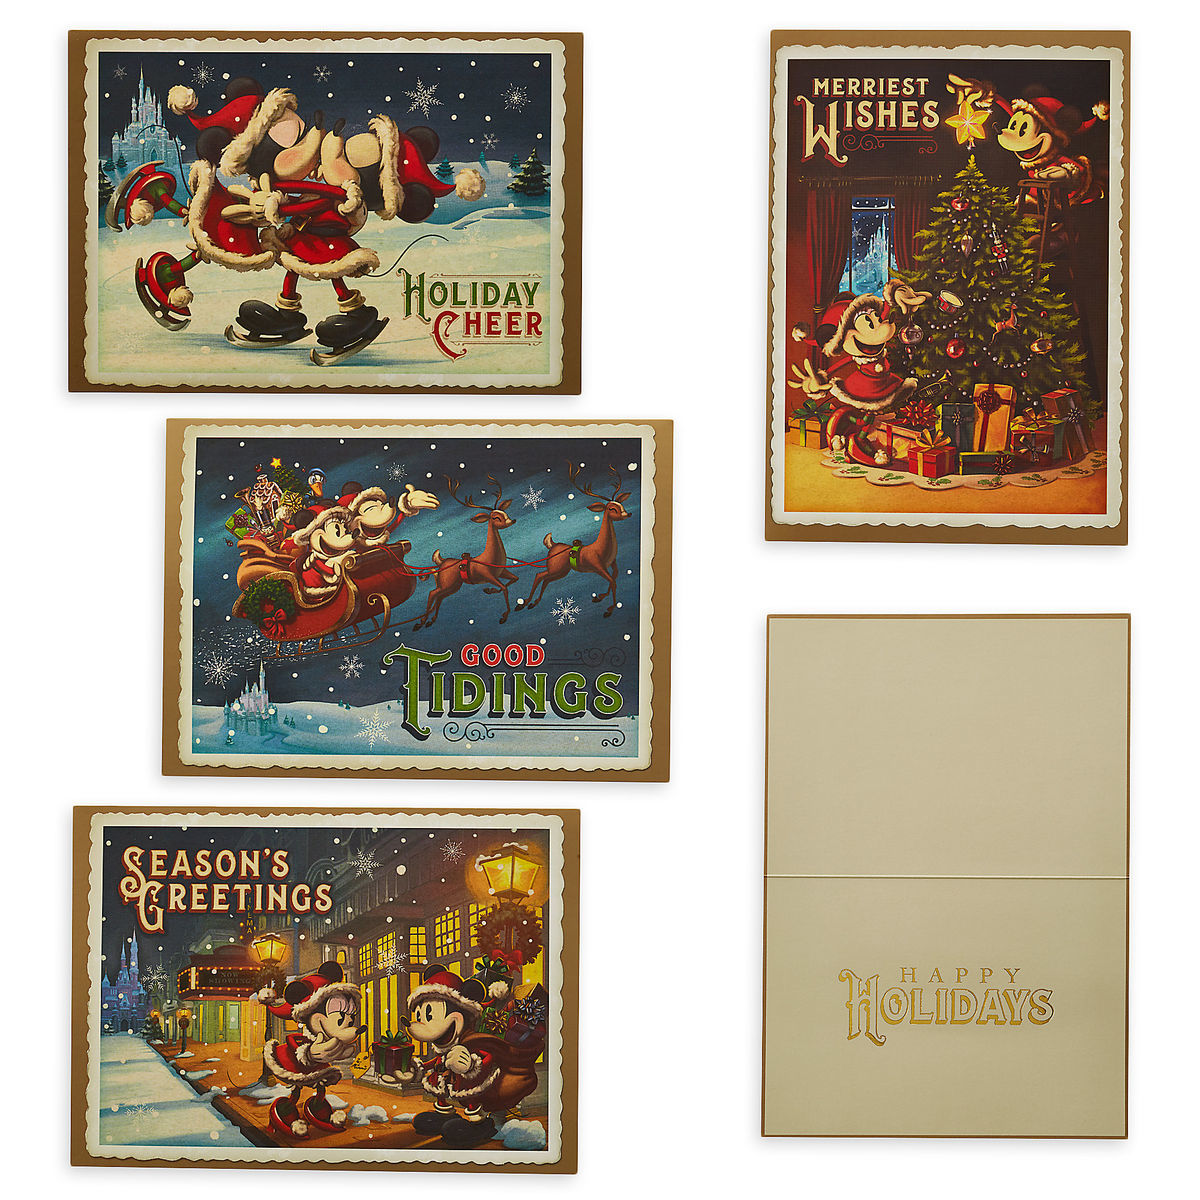 Santa Mickey and Minnie Mouse Holiday Cheer Greeting Cards | shopDisney